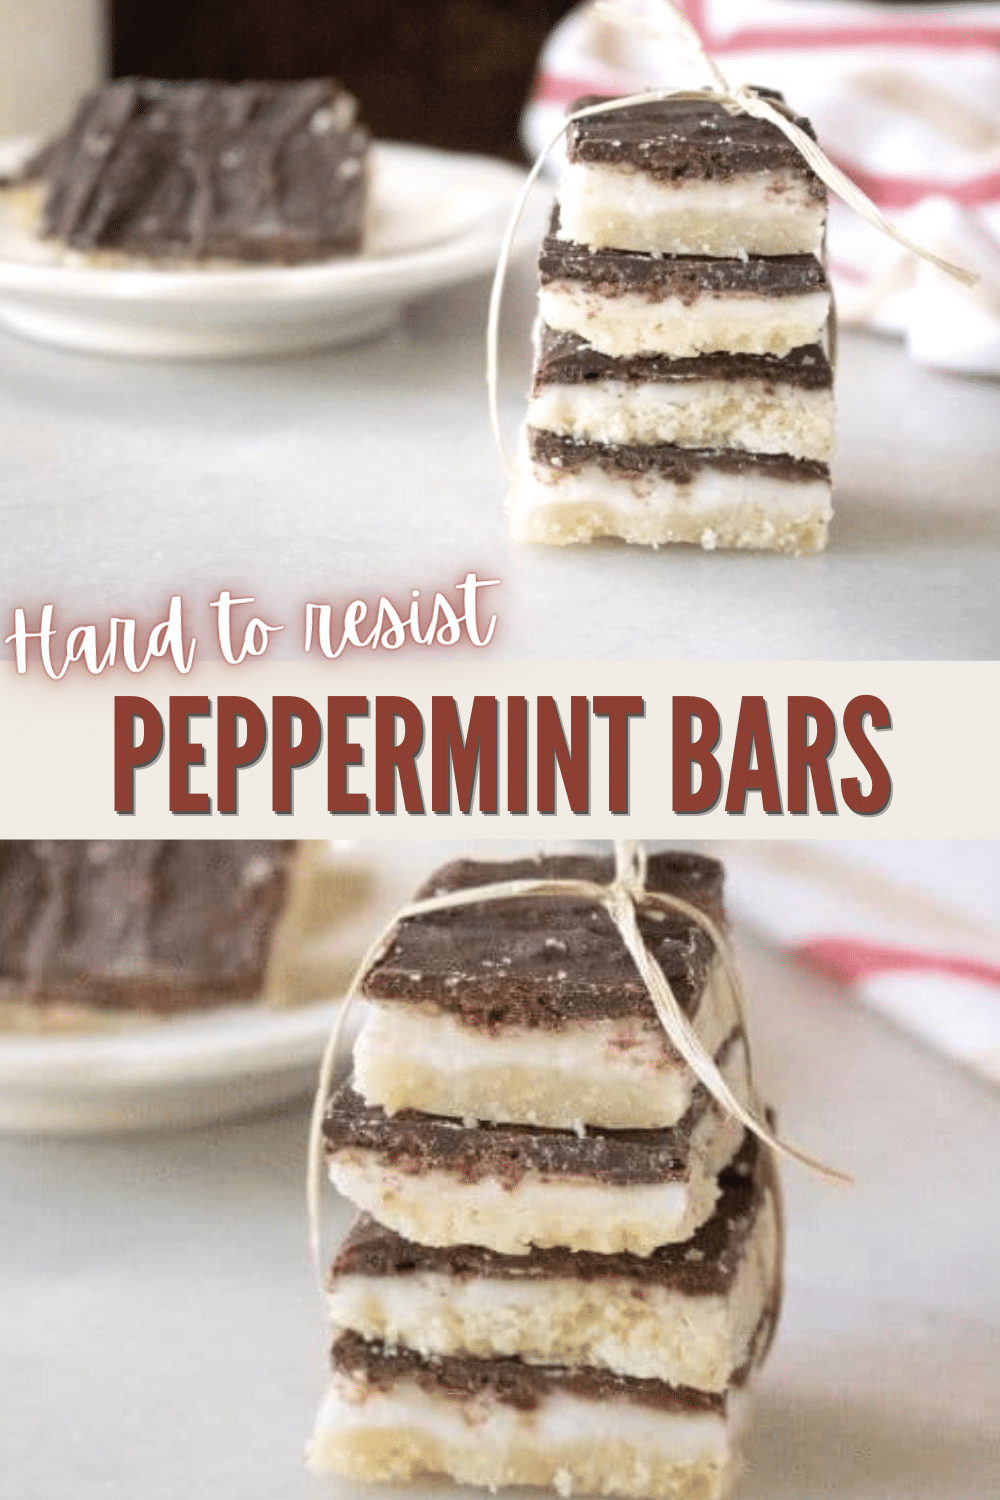 The delicious flavors of these peppermint bars will keep you wanting more. Chocolate and peppermint combine perfectly in an easy dessert recipe. #peppermint #dessert #peppermintbars via @wondermomwannab